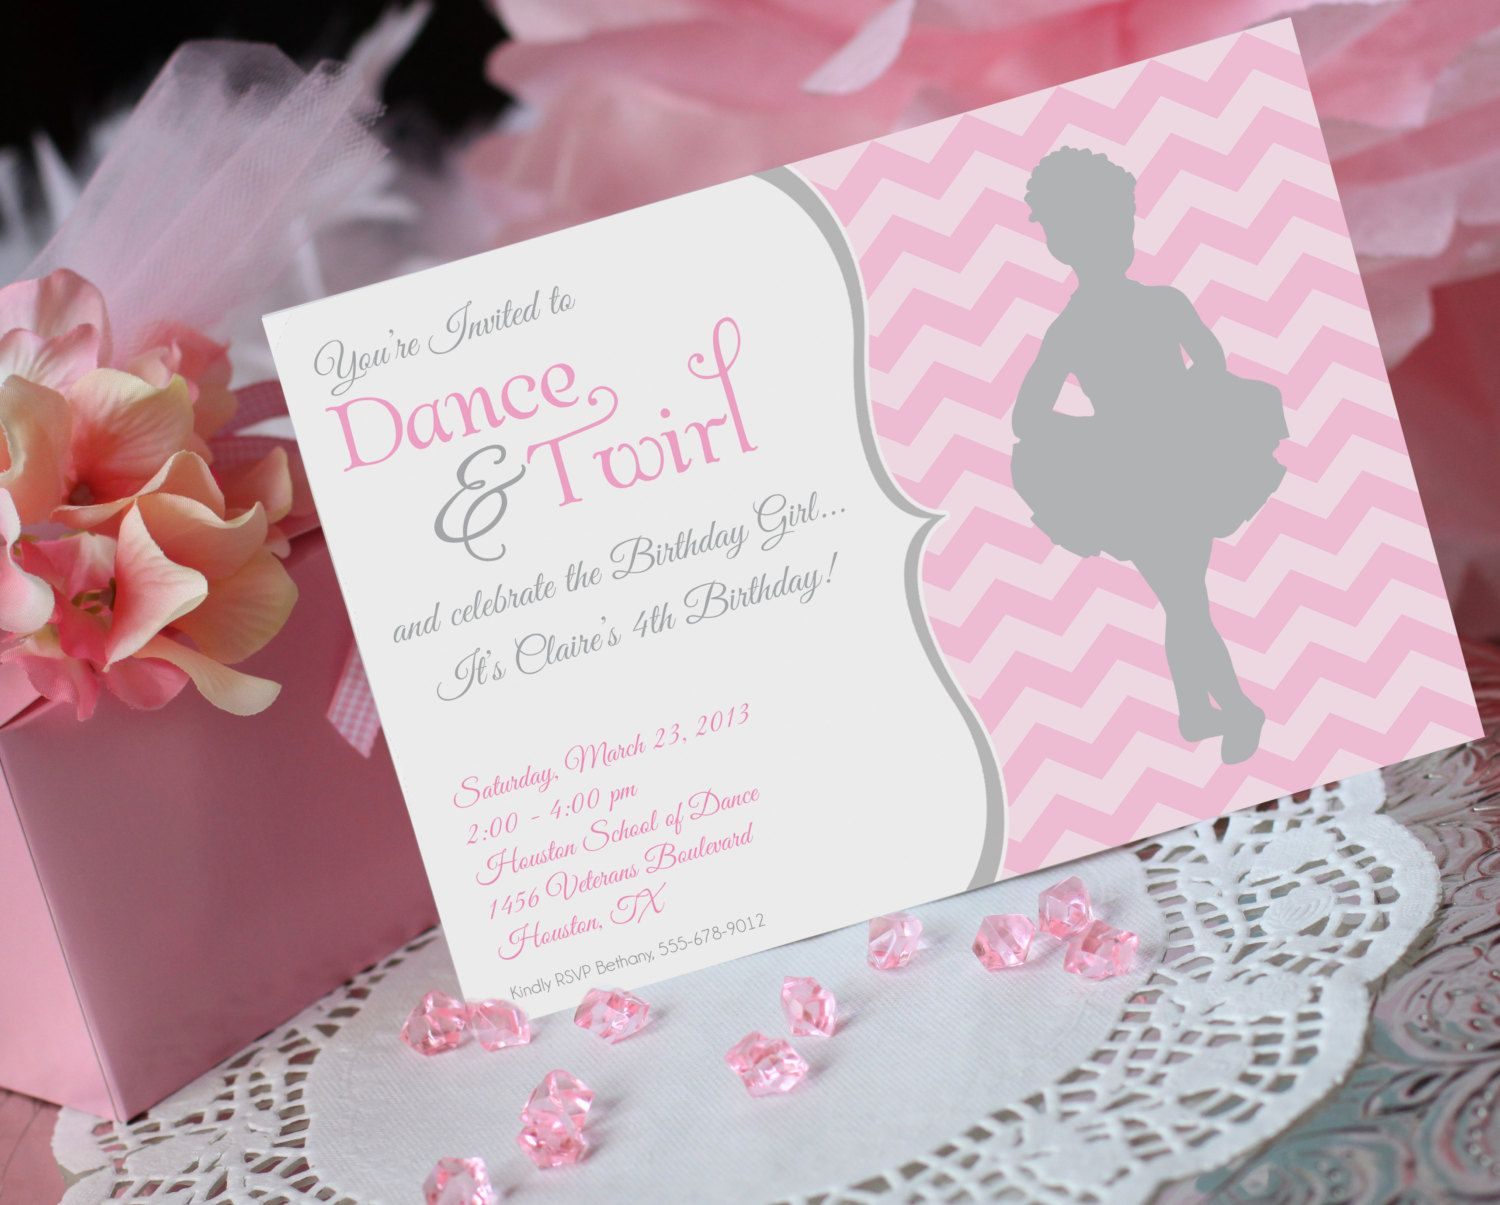 Sample Invitation Letter For Birthday Party Ulang tahun